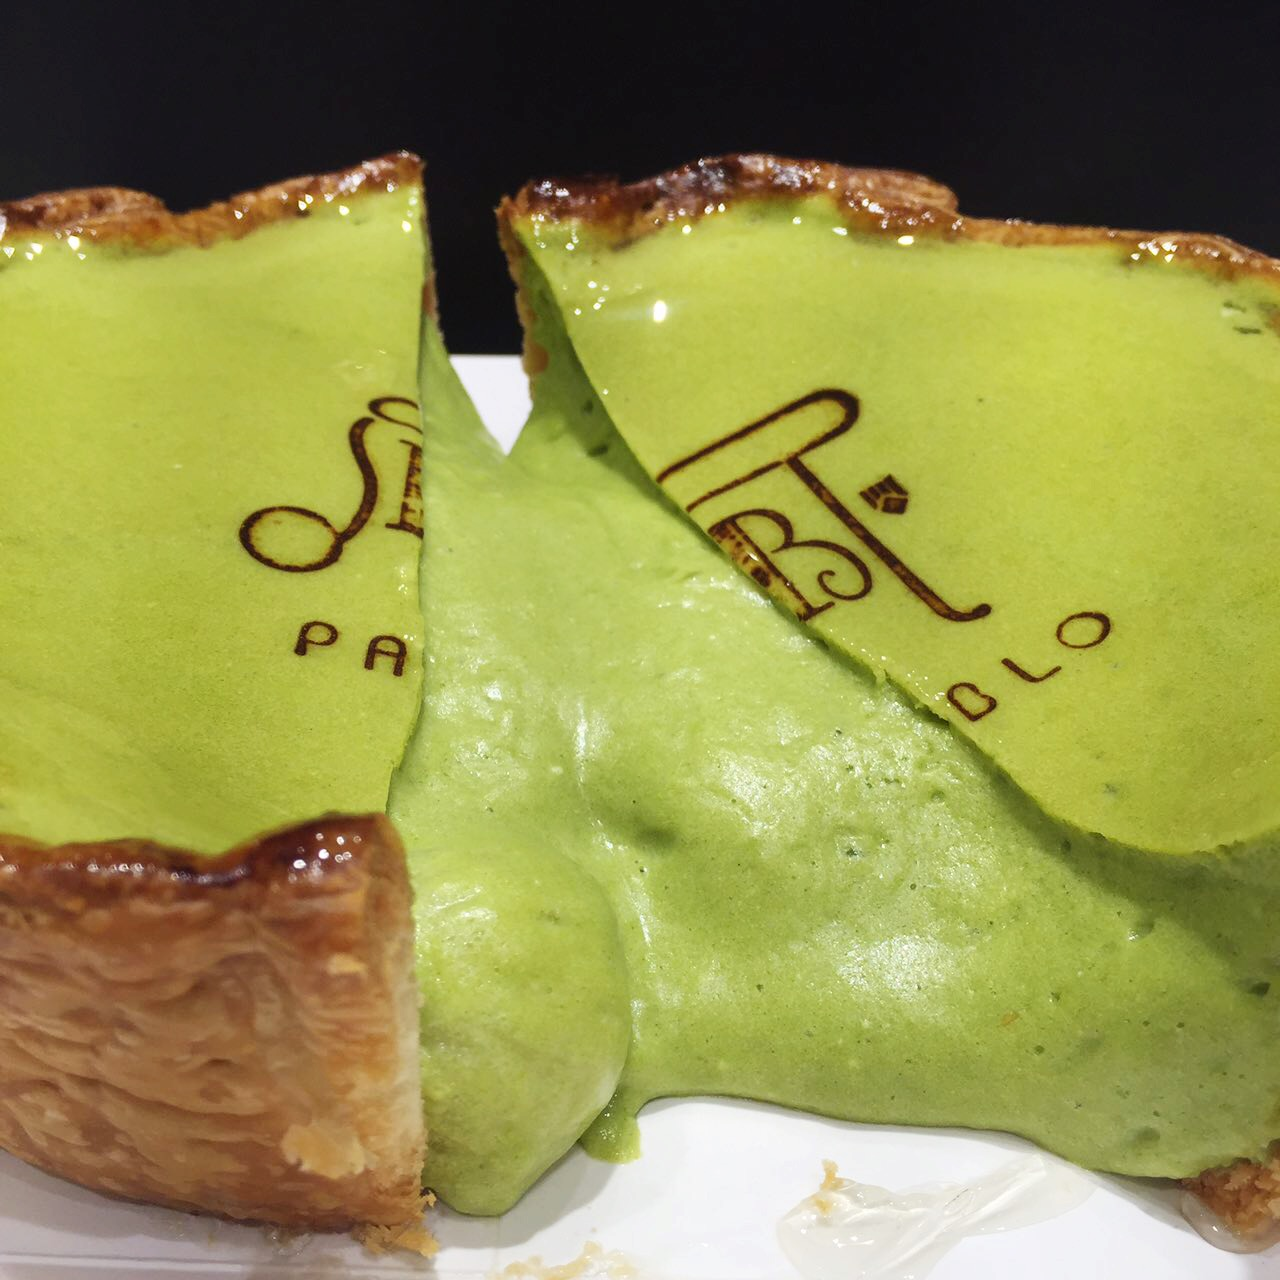 Pablo Sabrel Cheese Black Now In Manila The Best Cheesecake World Booky Making Of Matcha Tarts Img 7321